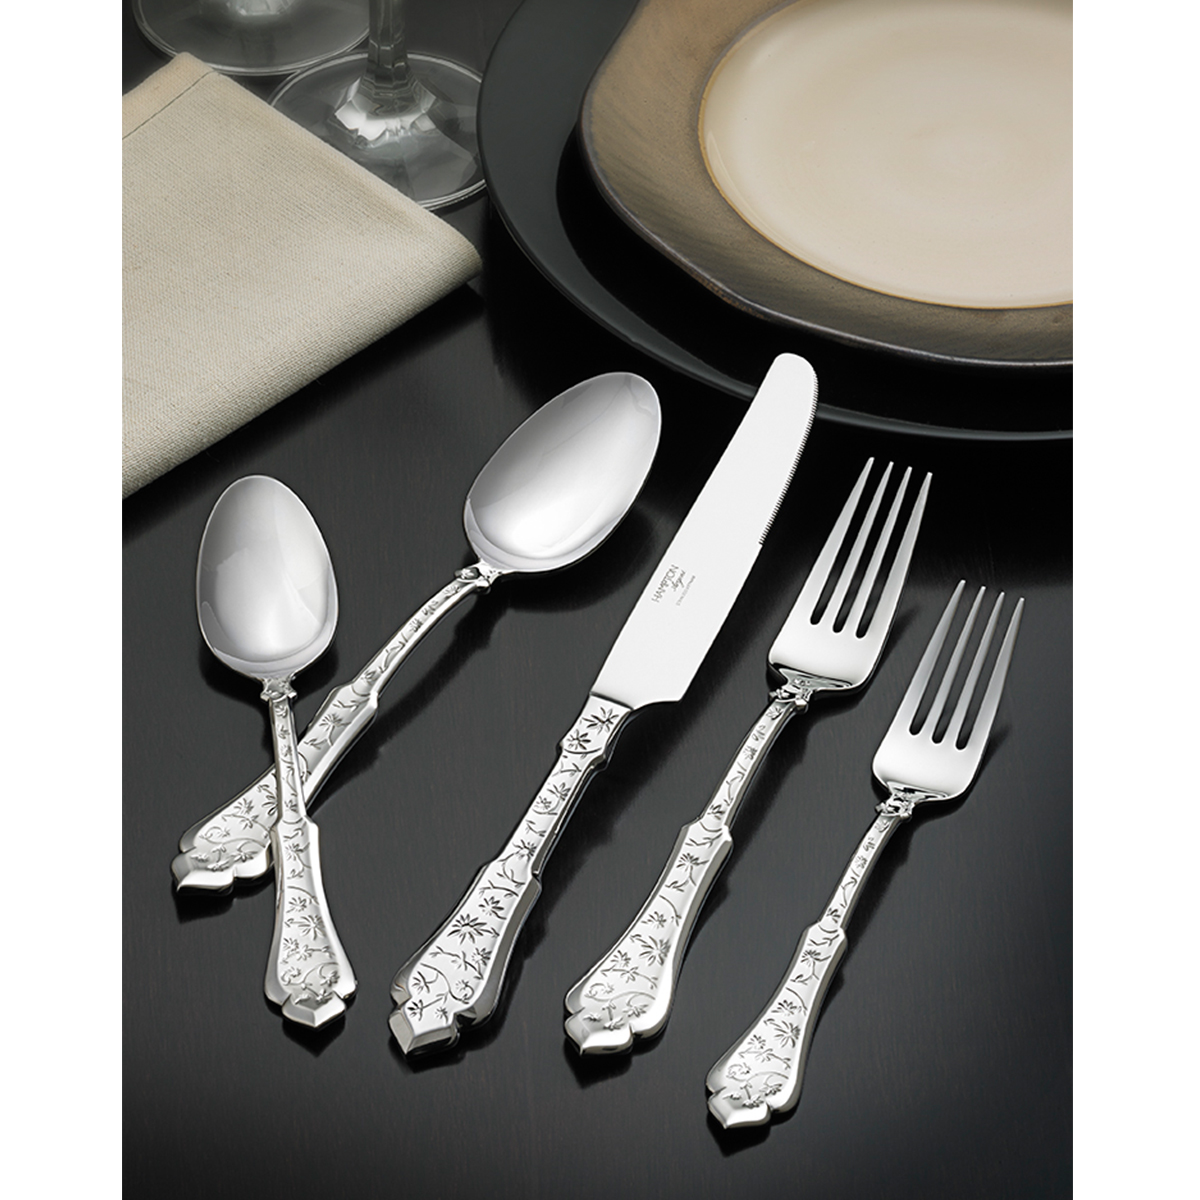 Rustic Flatware Patterns Embroidery 18 10 45 Piece Set Hamptonforge